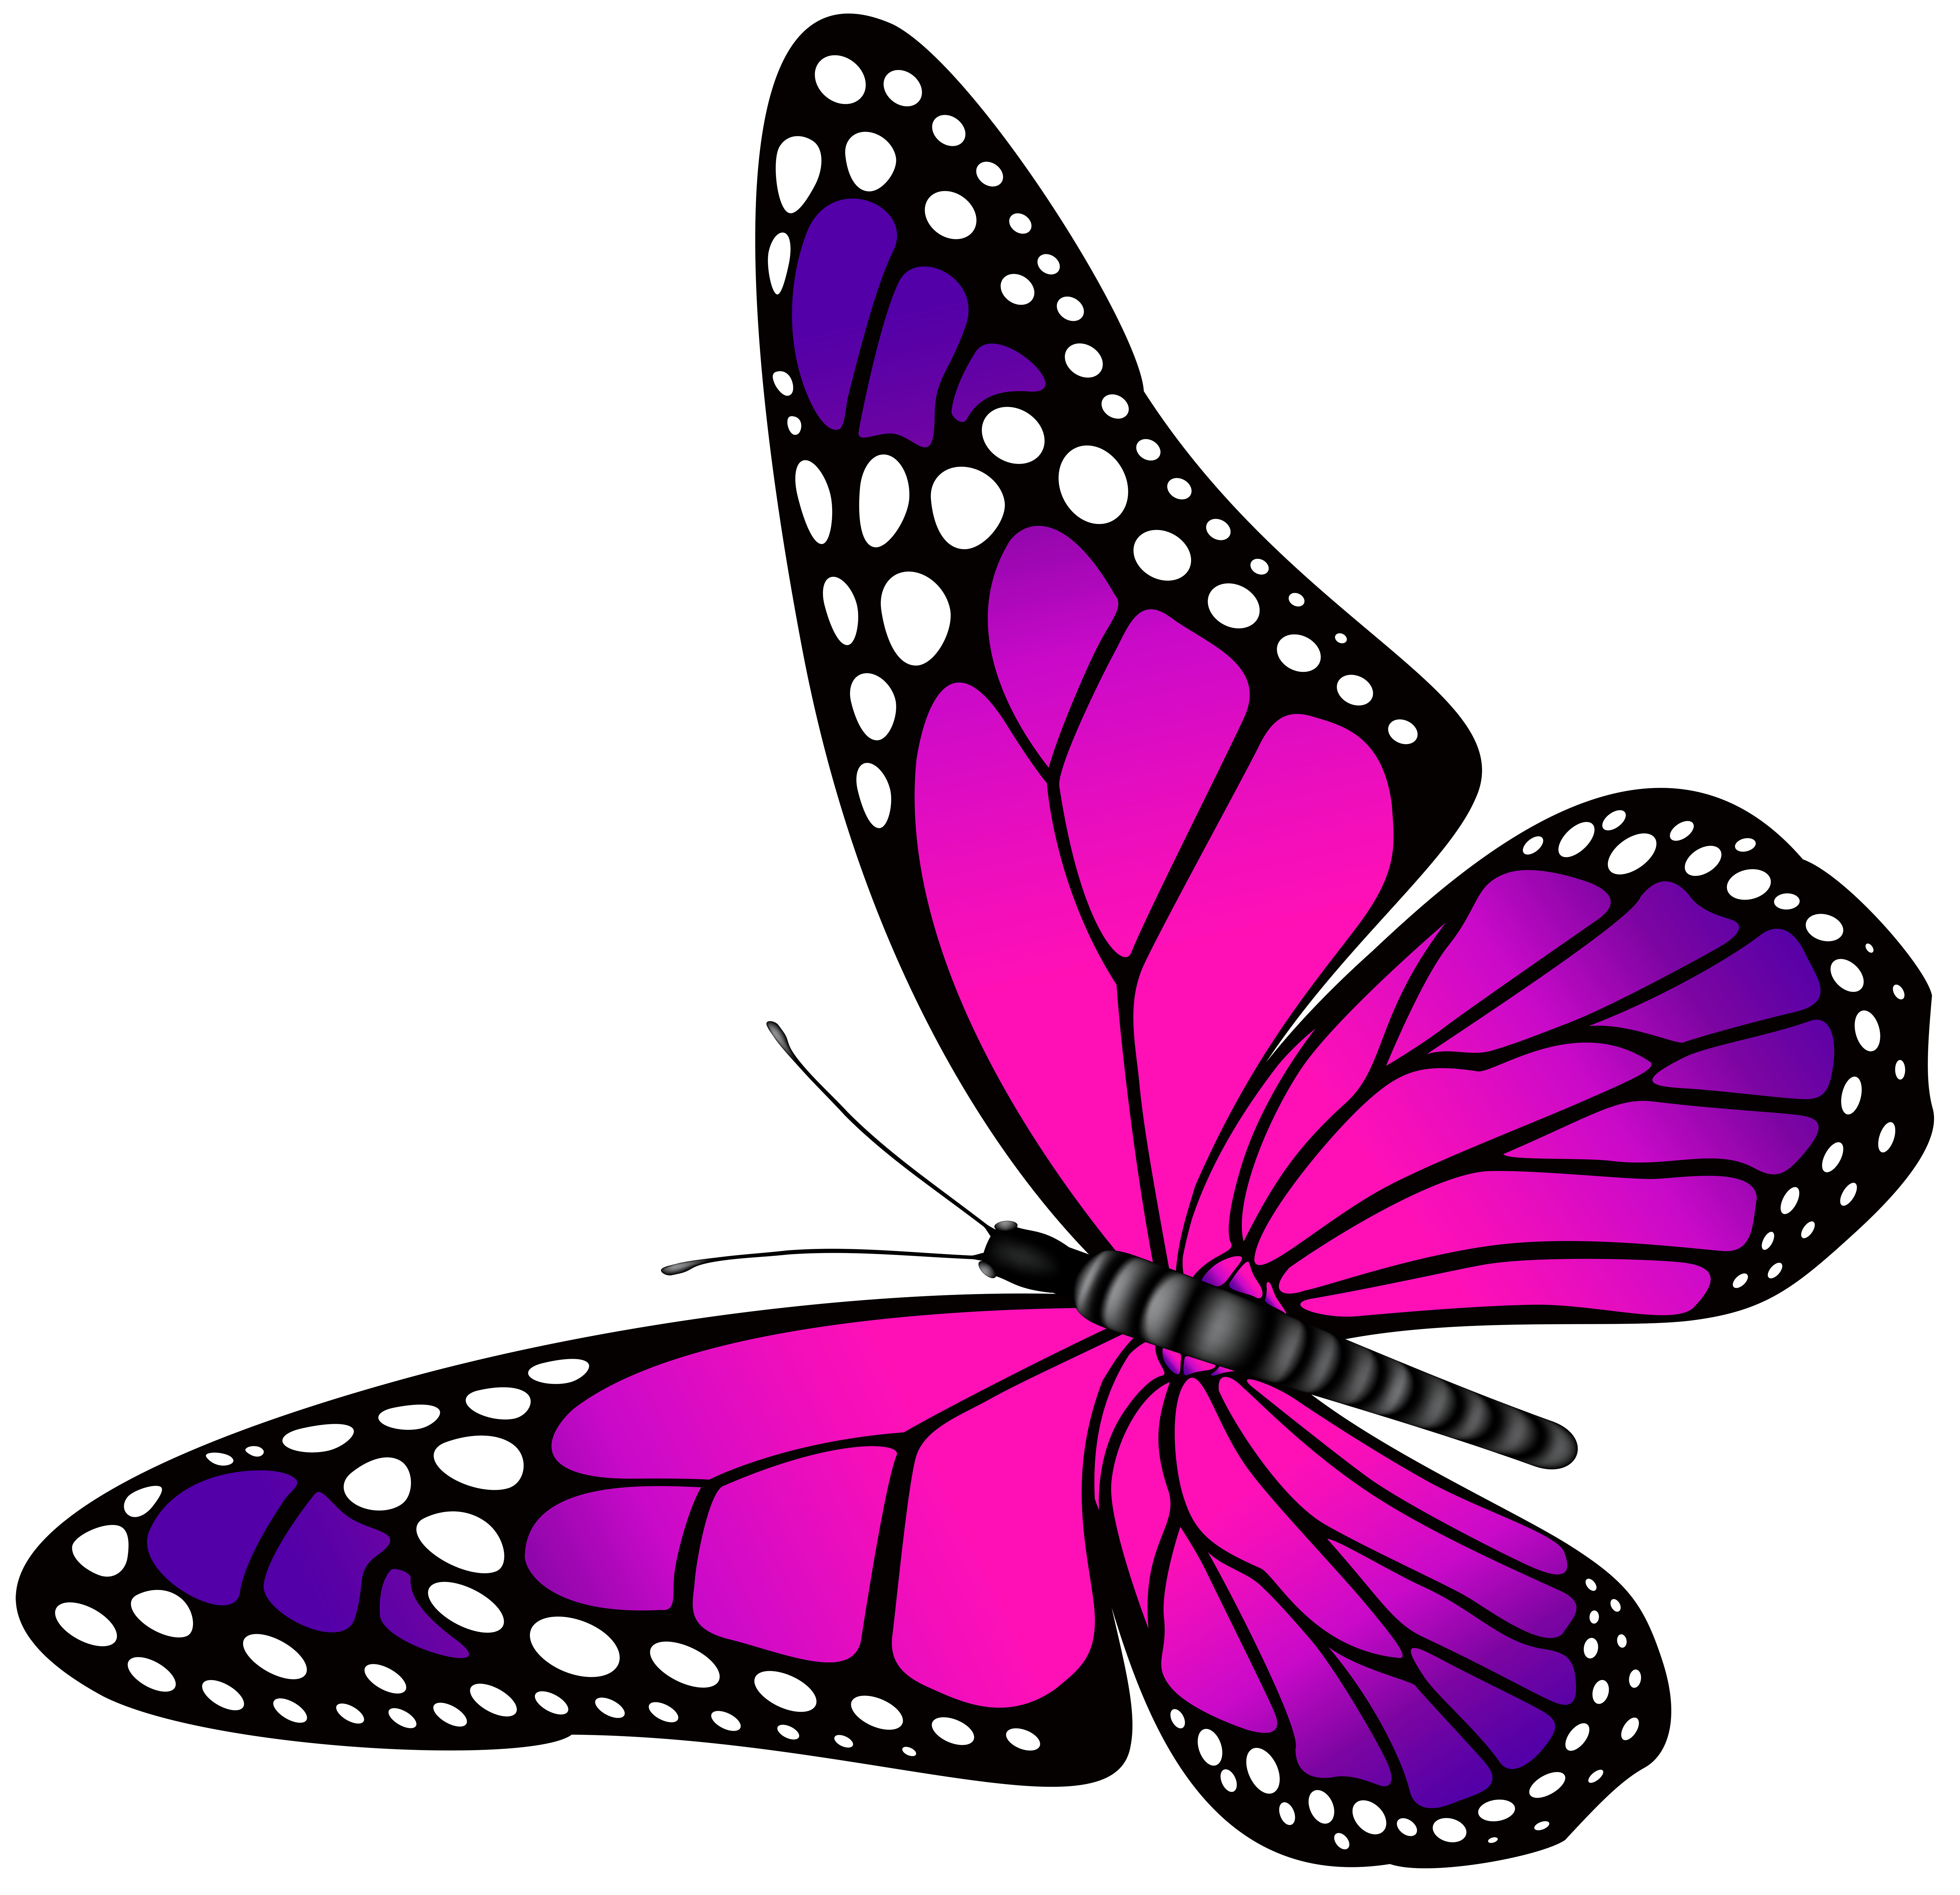 butterfly clipart for kids at getdrawings com free for personal rh getdrawings com clip art butterfly outline clip art butterfly tree